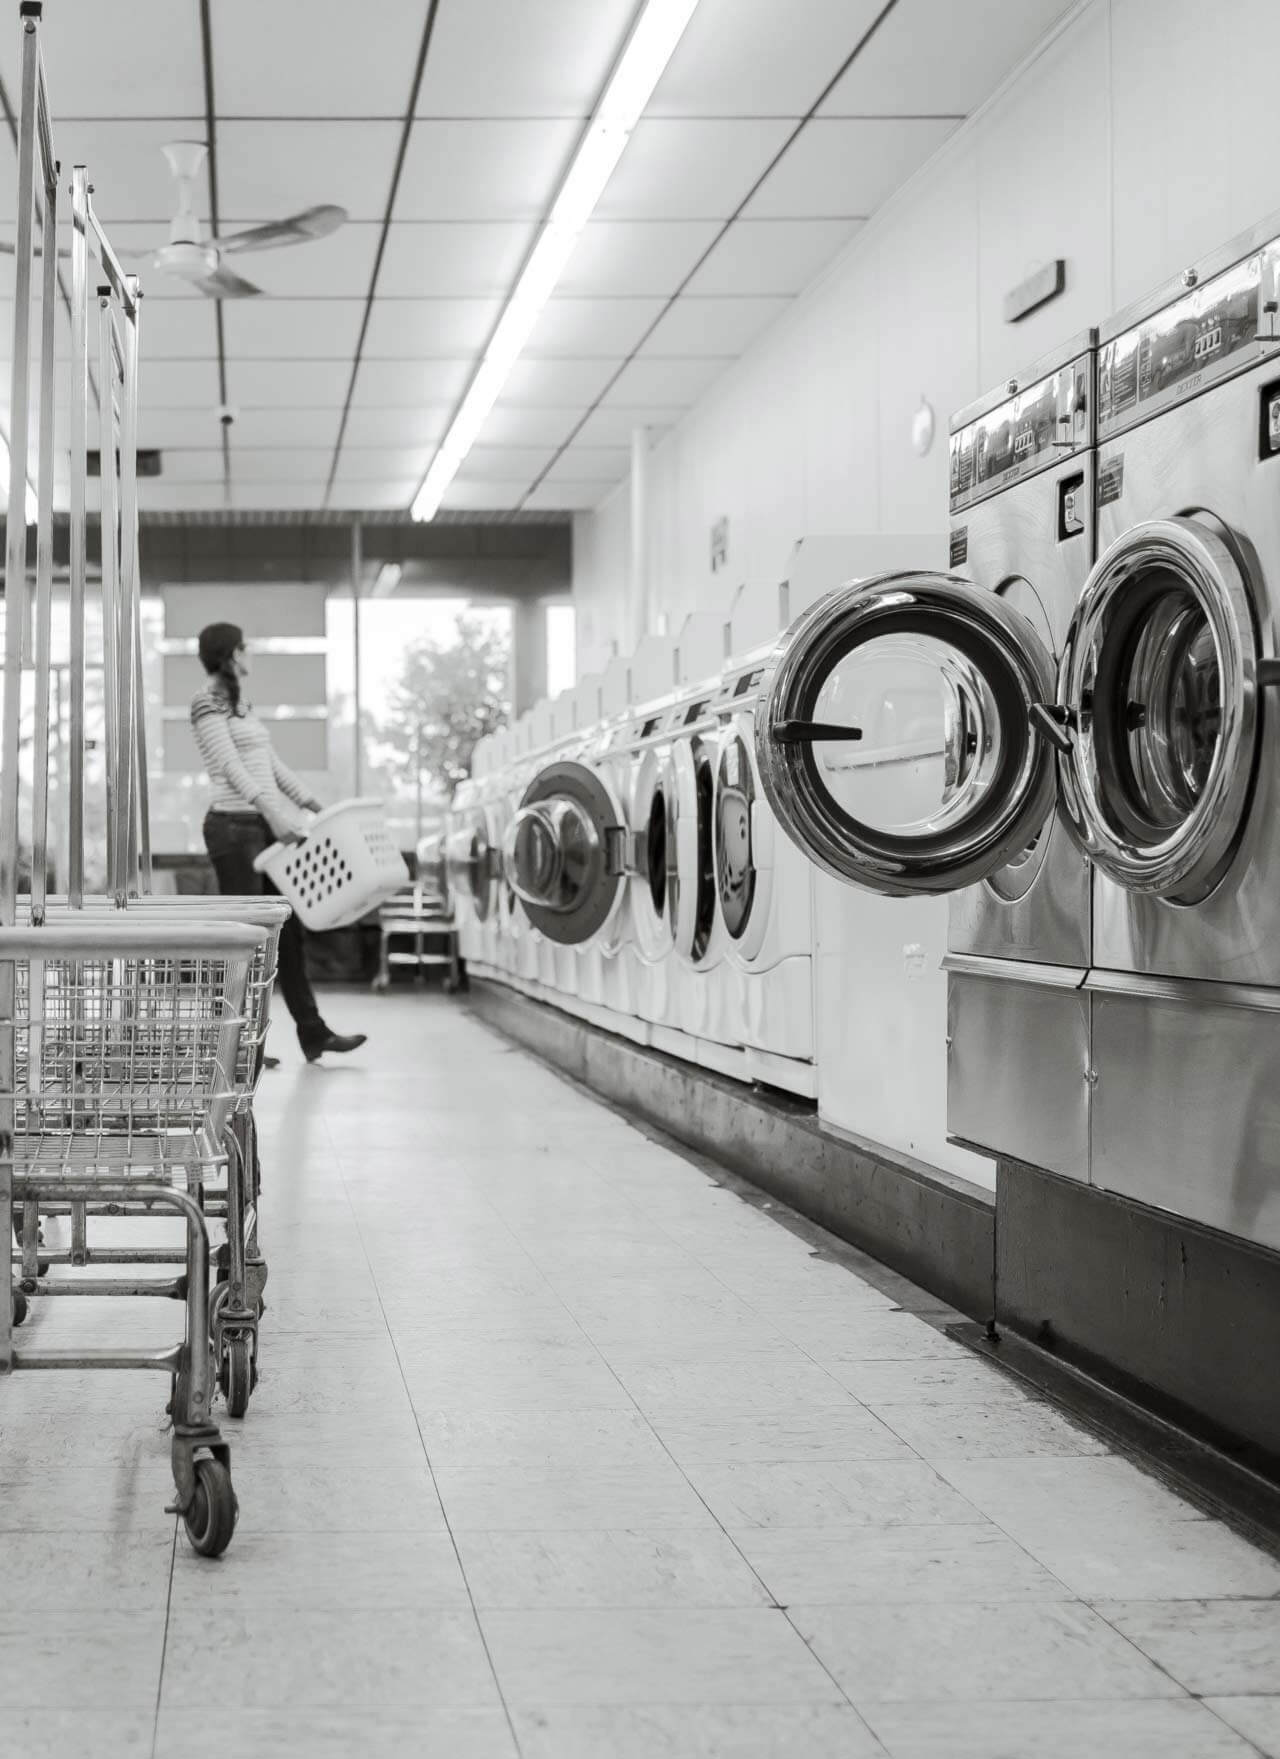 A woman carries a washing basket in the background of a Laundromat. Silver and white washing machines line the wall.